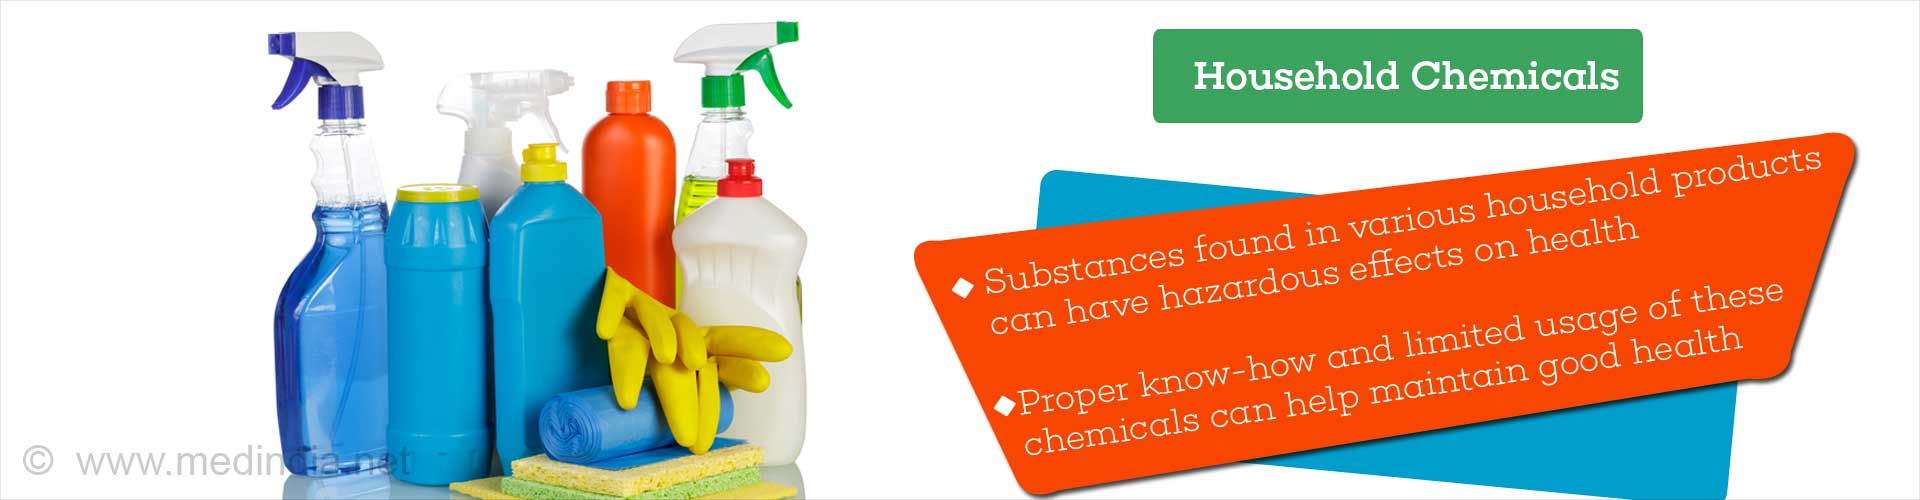 Top 7 Health Risks of Household Chemicals